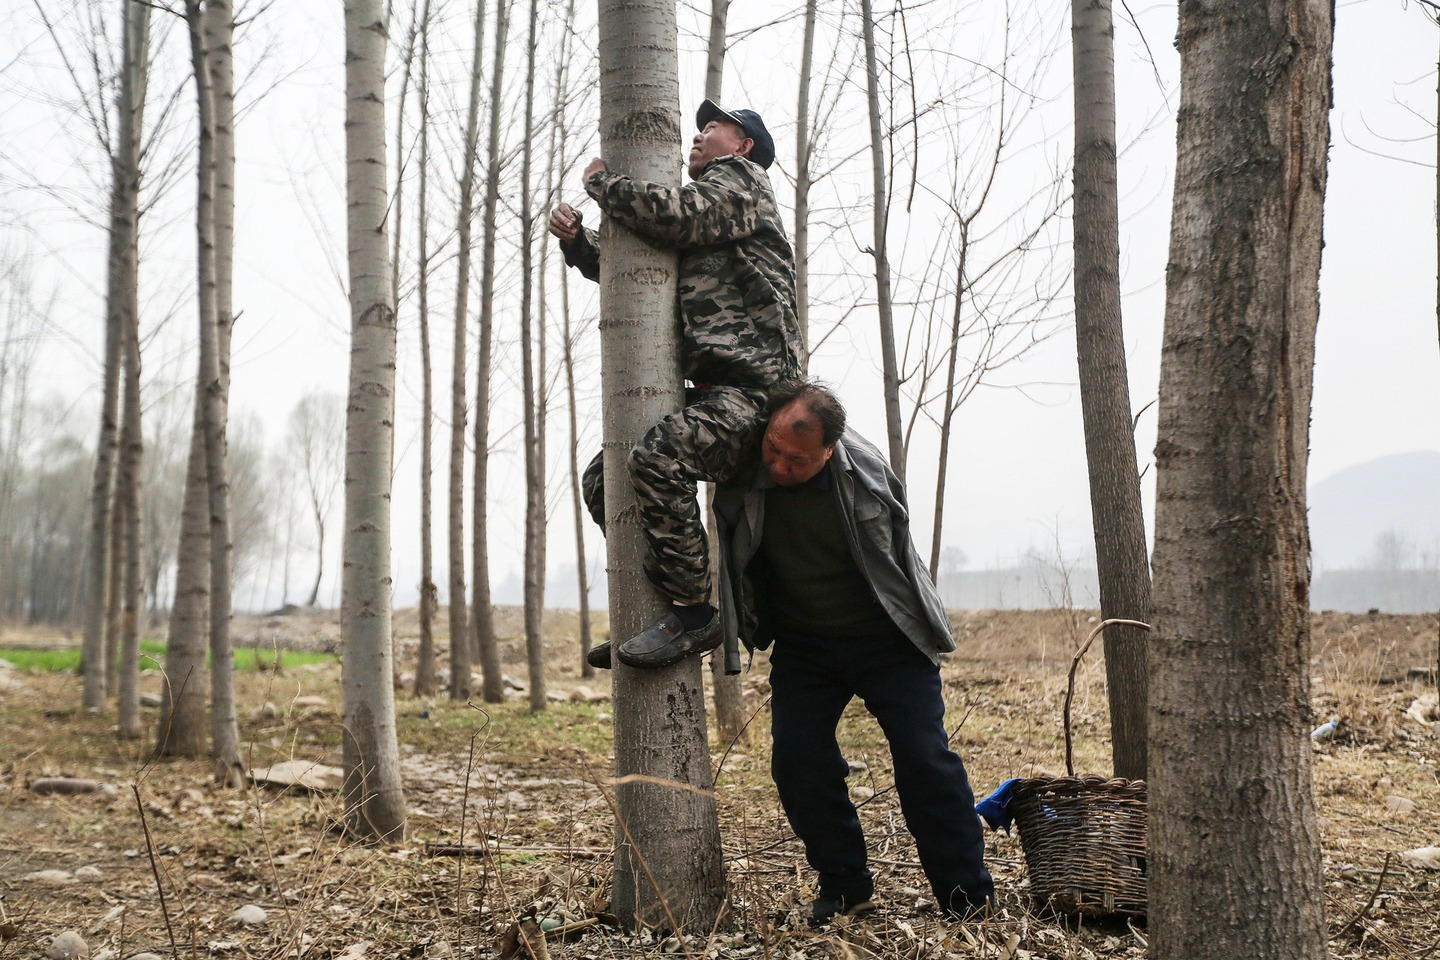 Jia Wenqi uses his shoulder to help his blind friend Jia Haixia climb a tree they planted, to hew branches in Yeli village.